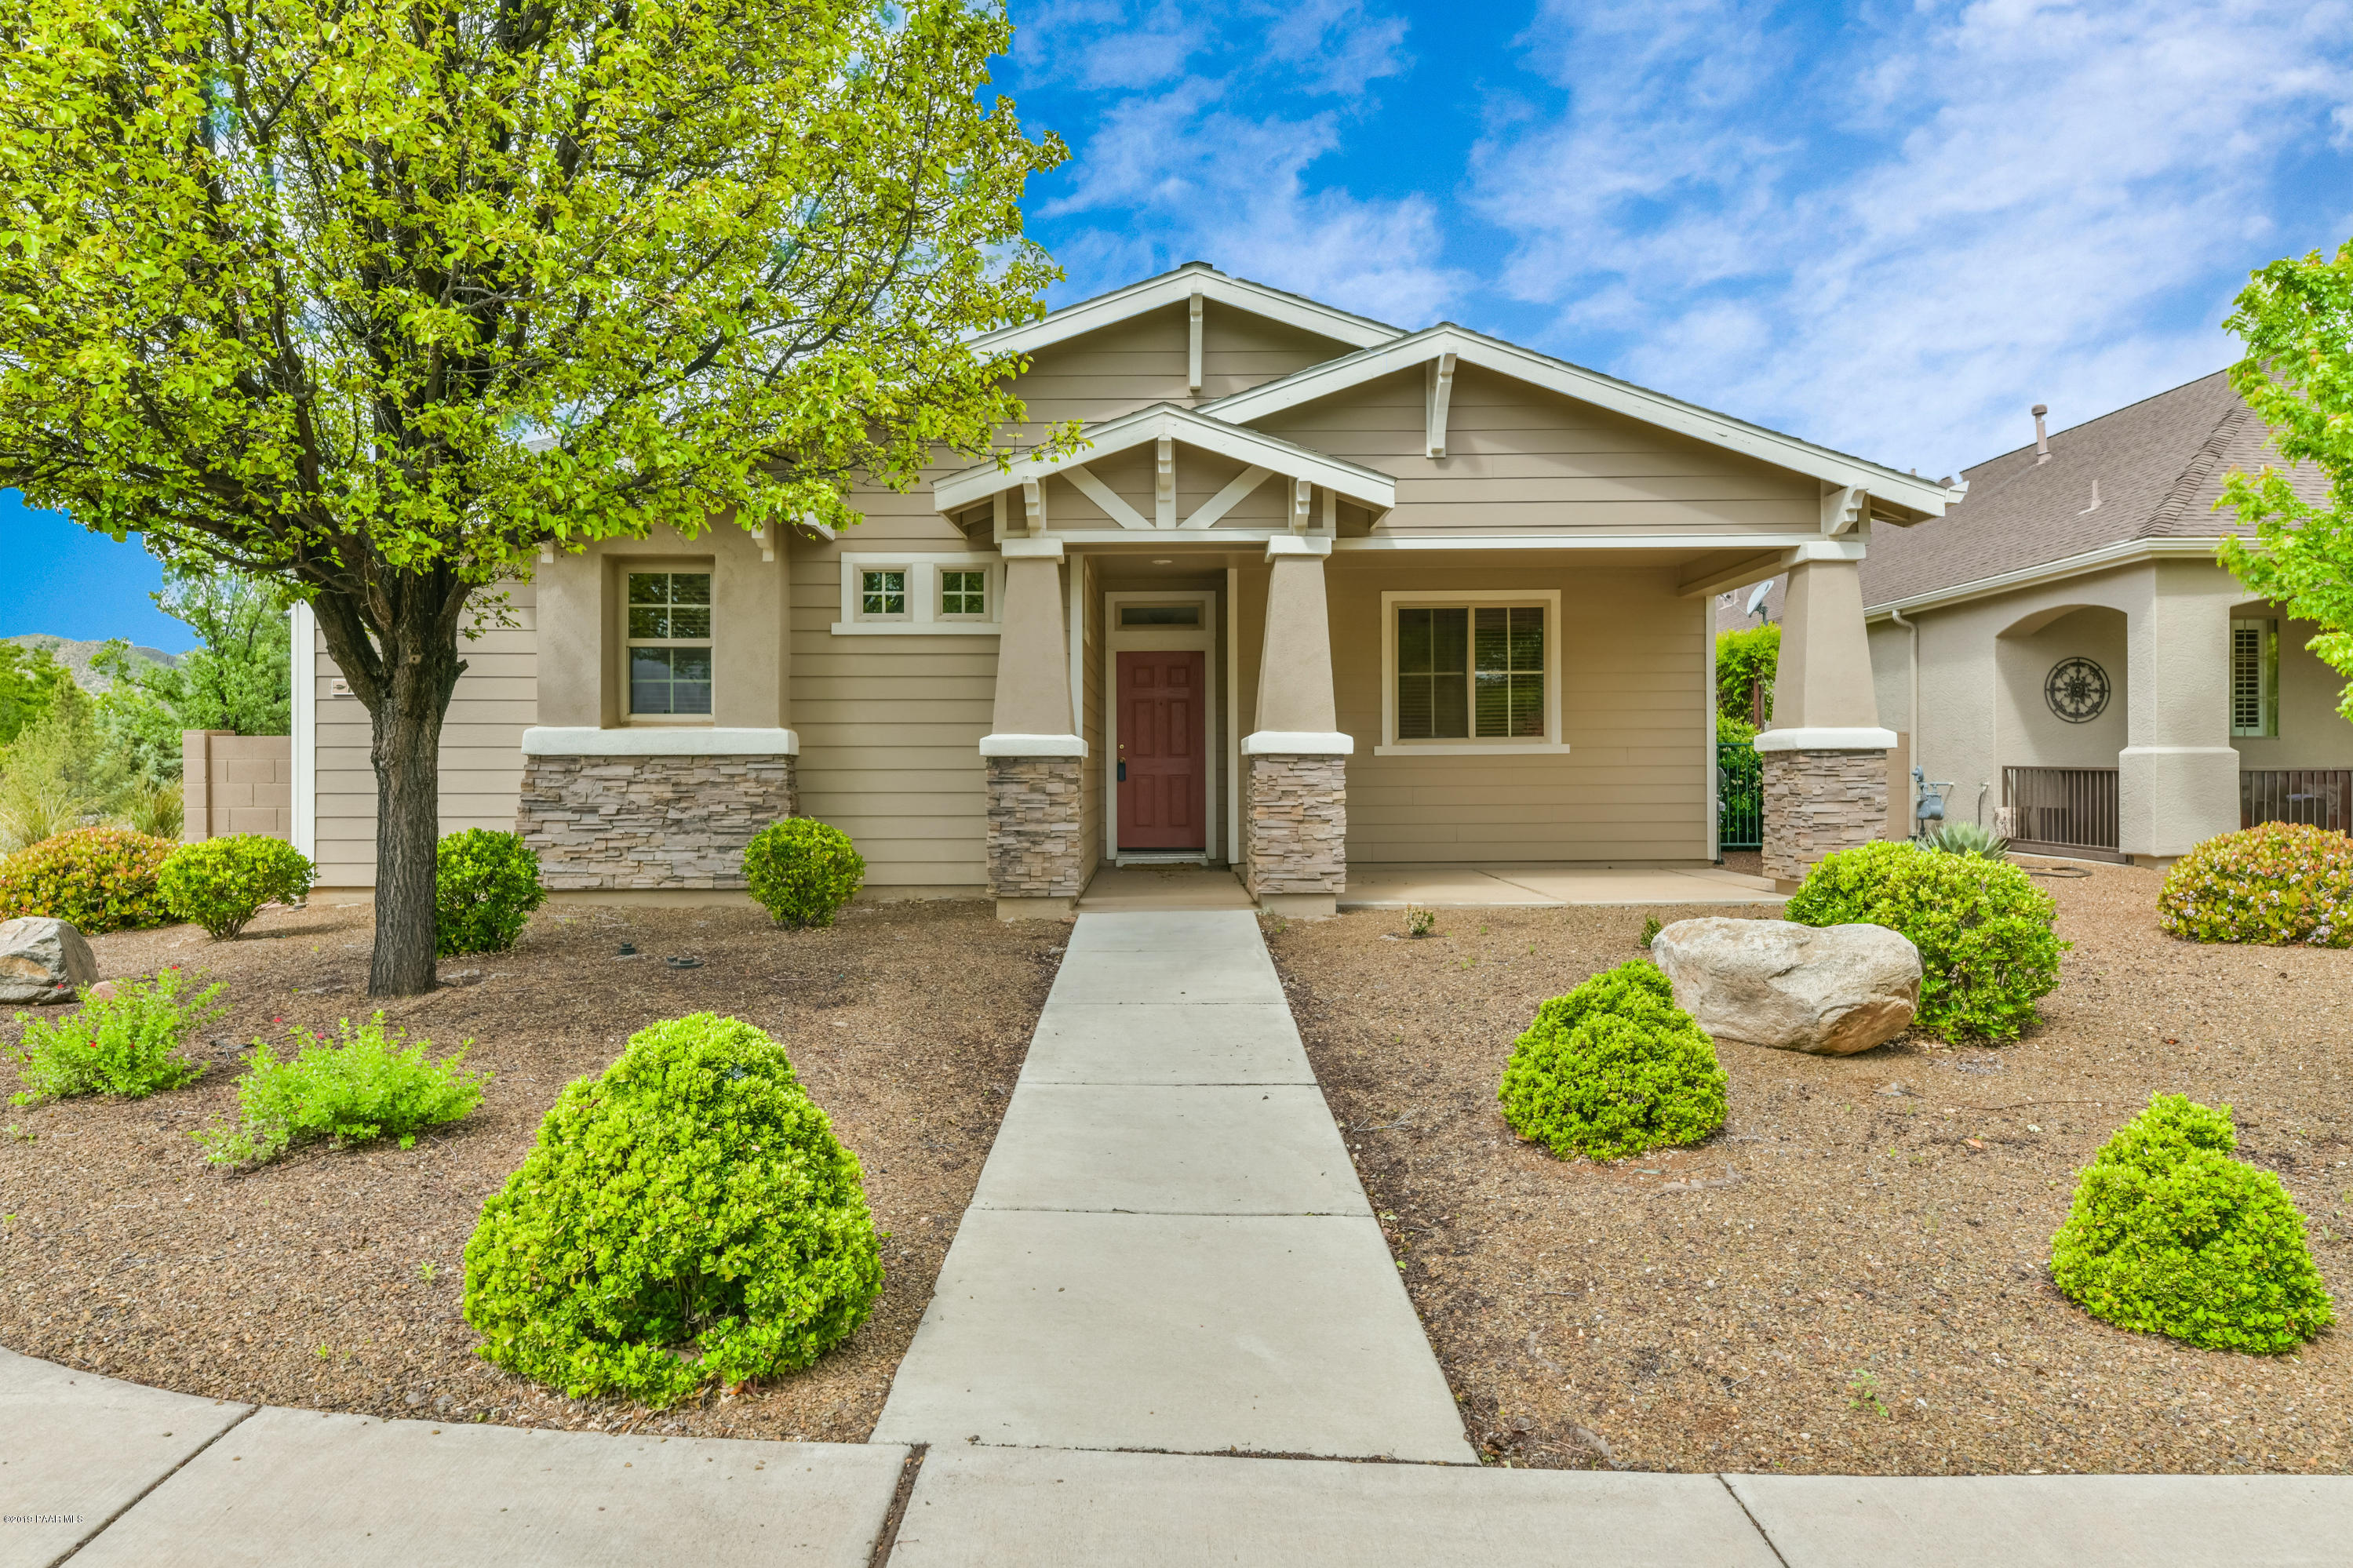 1838 N Tin Strap Trail, Prescott Valley Az 86314